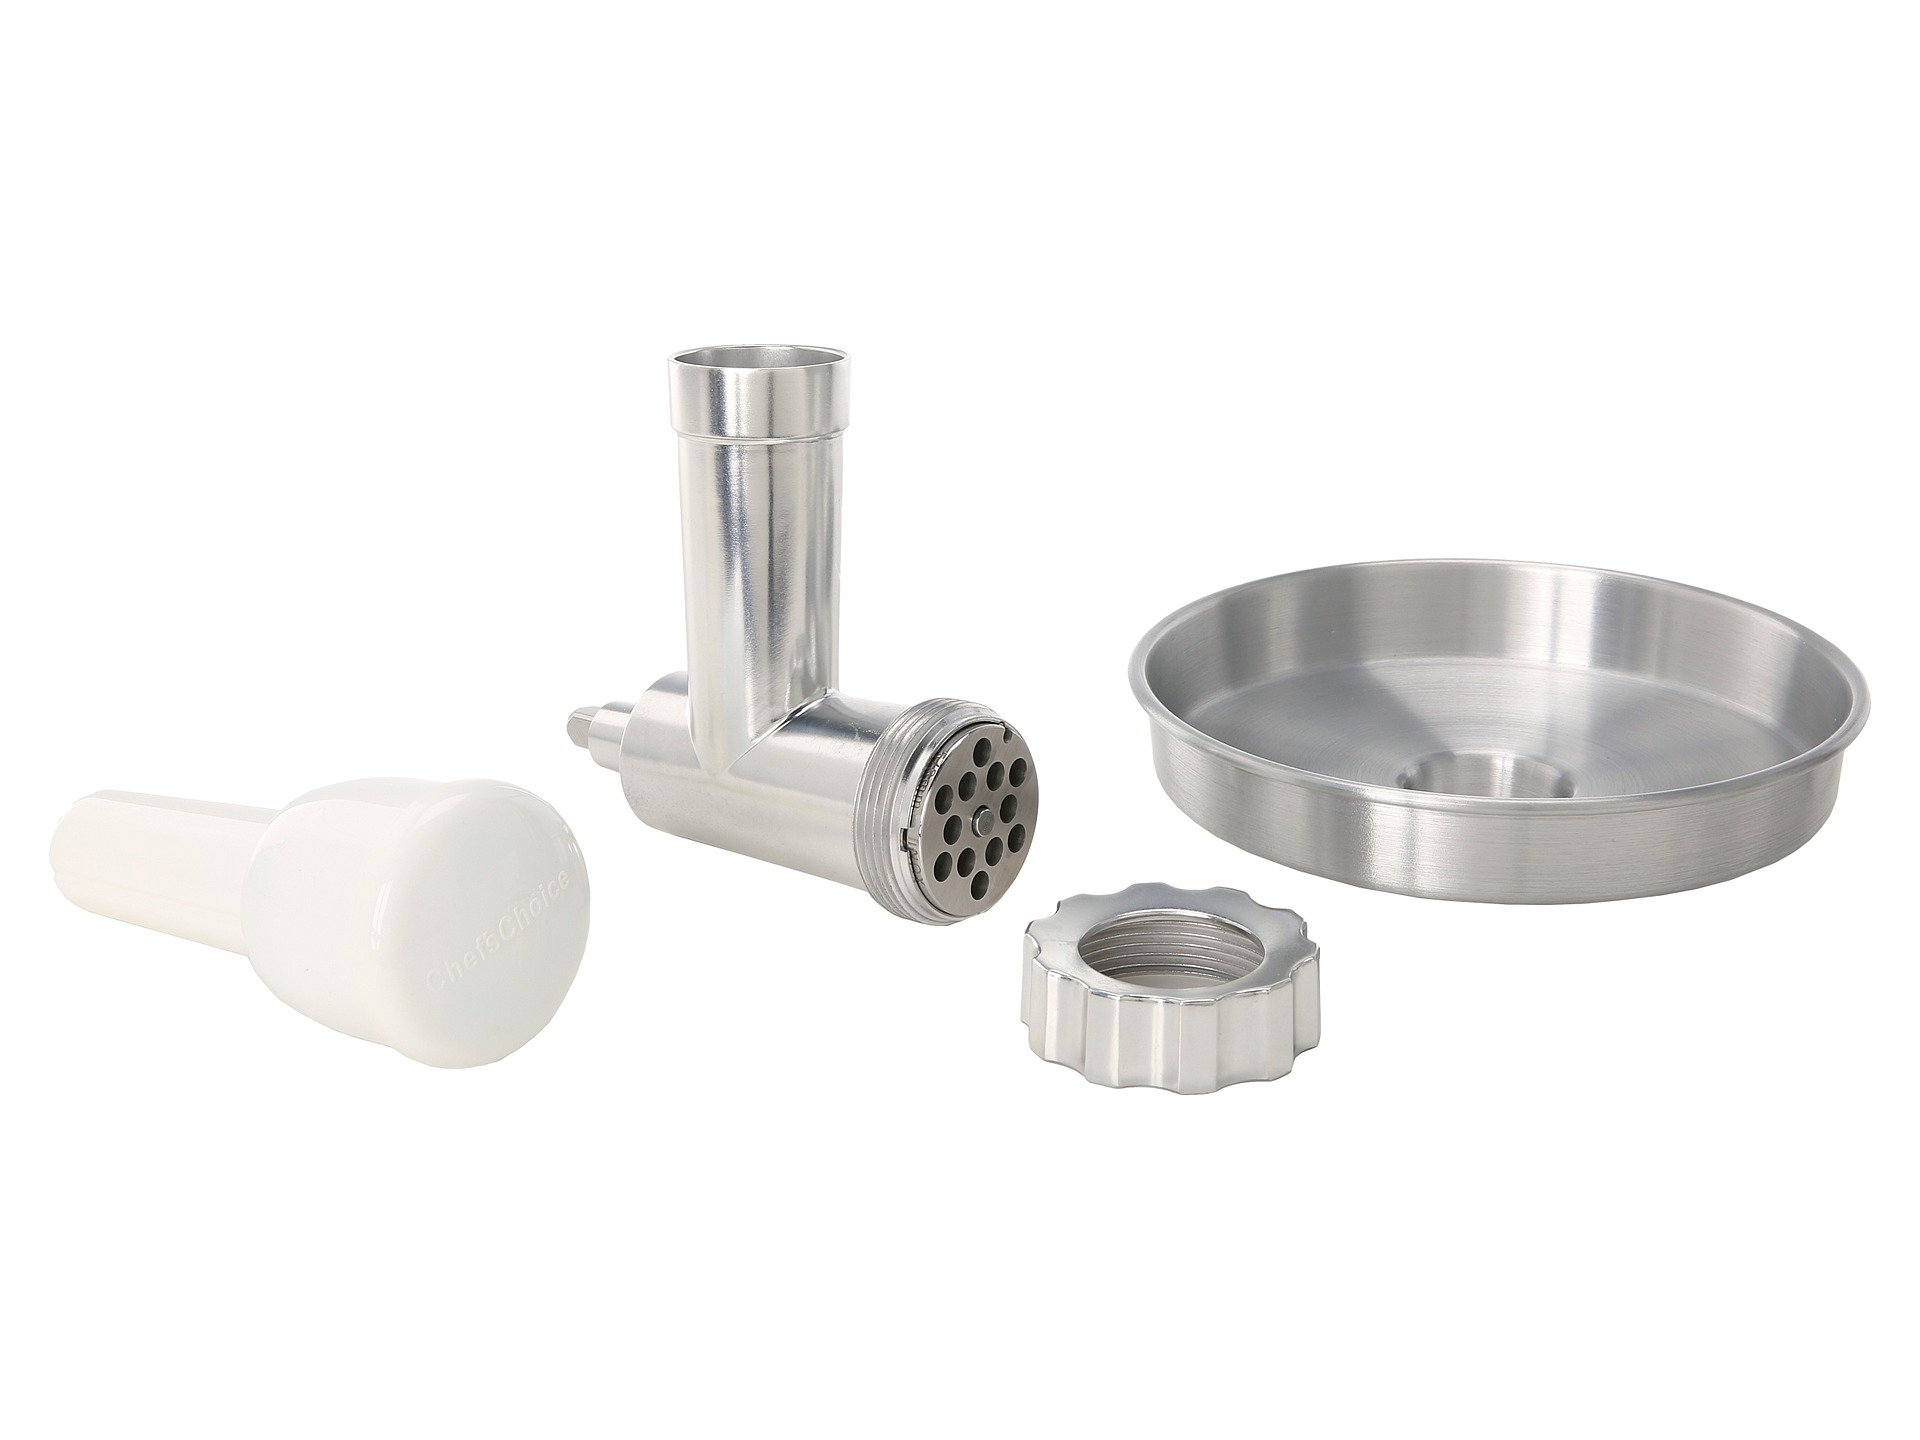 Chefs Choice Premium Metal Food Grinder Attachment 796 Designed For Kitchen Aid Stand Mixers